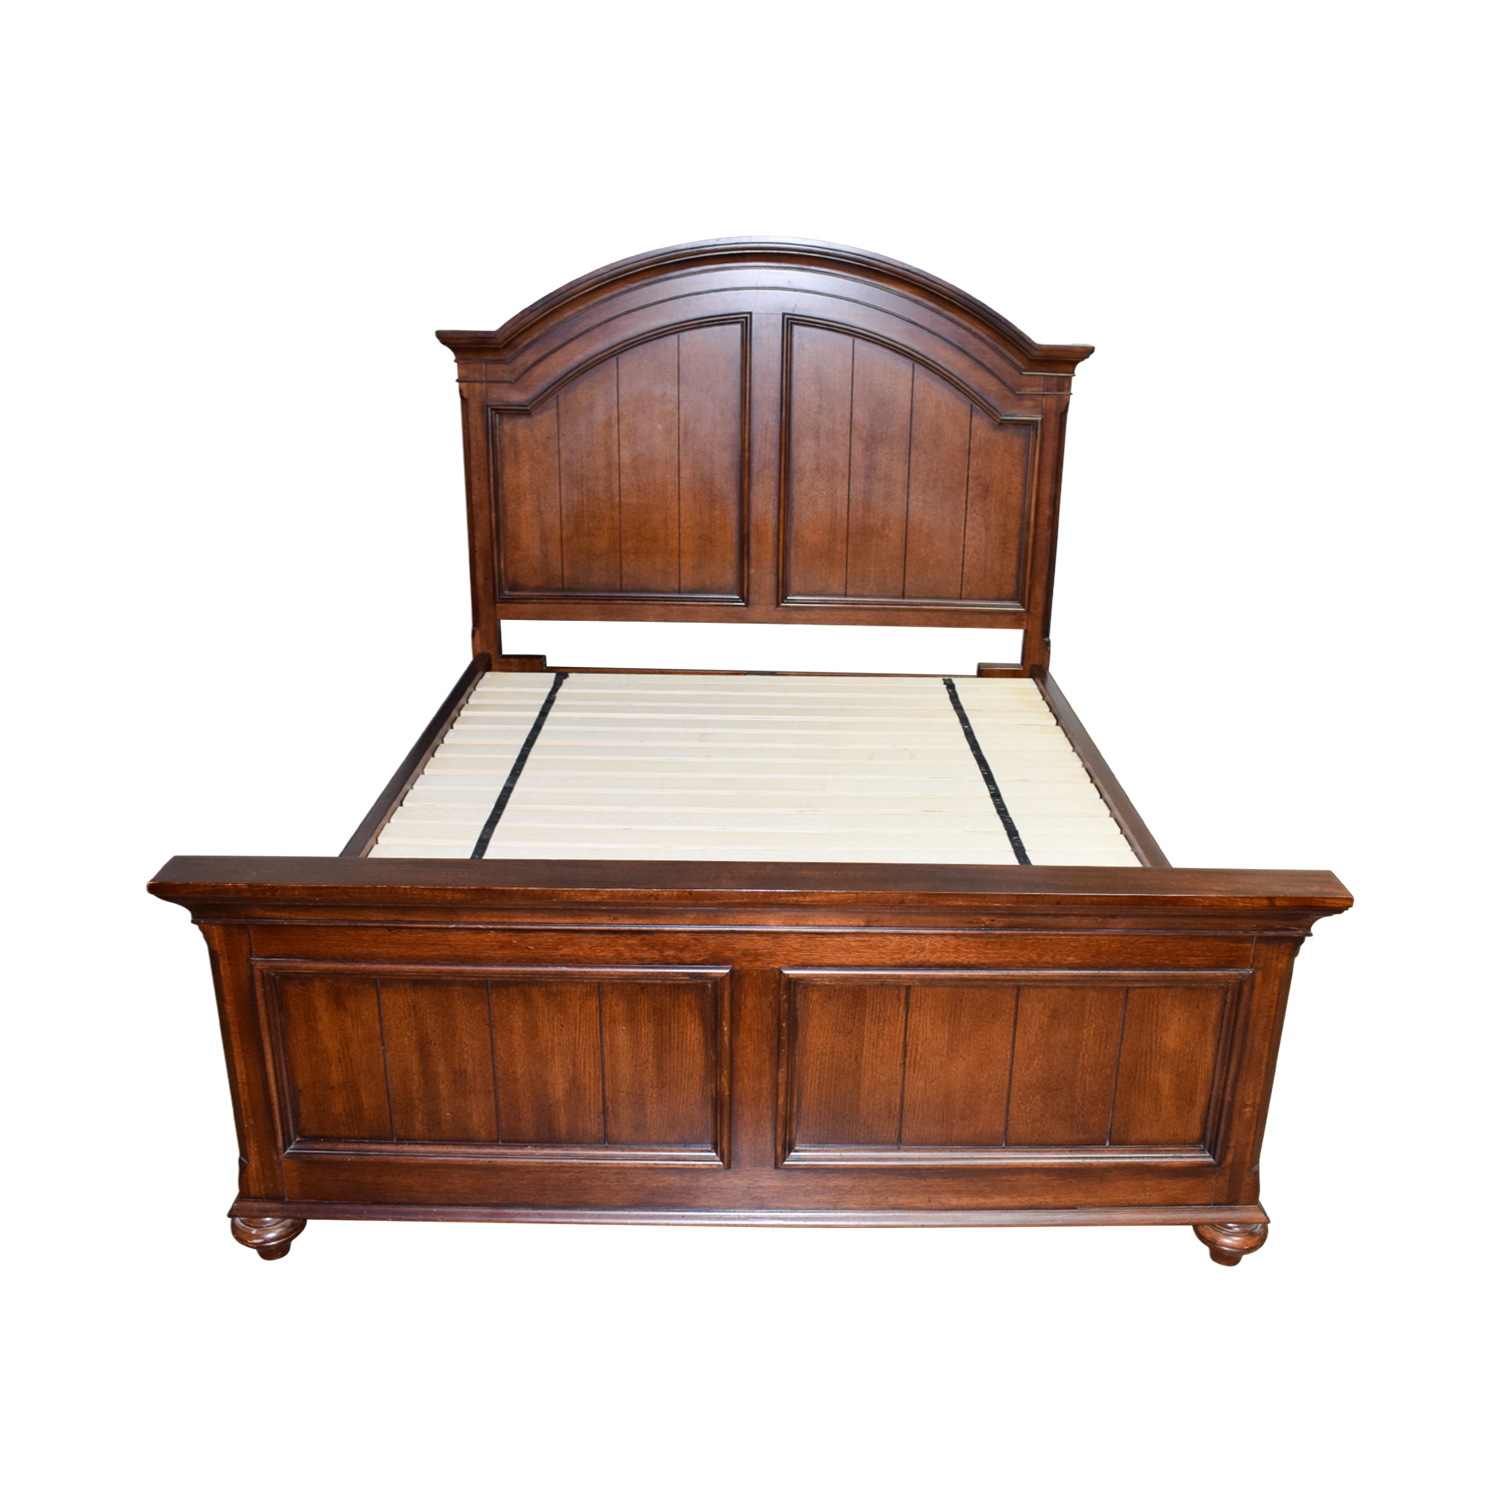 Raymour & Flanigan Canyon Creek Queen Storage Platform Bed Raymour & Flanigan